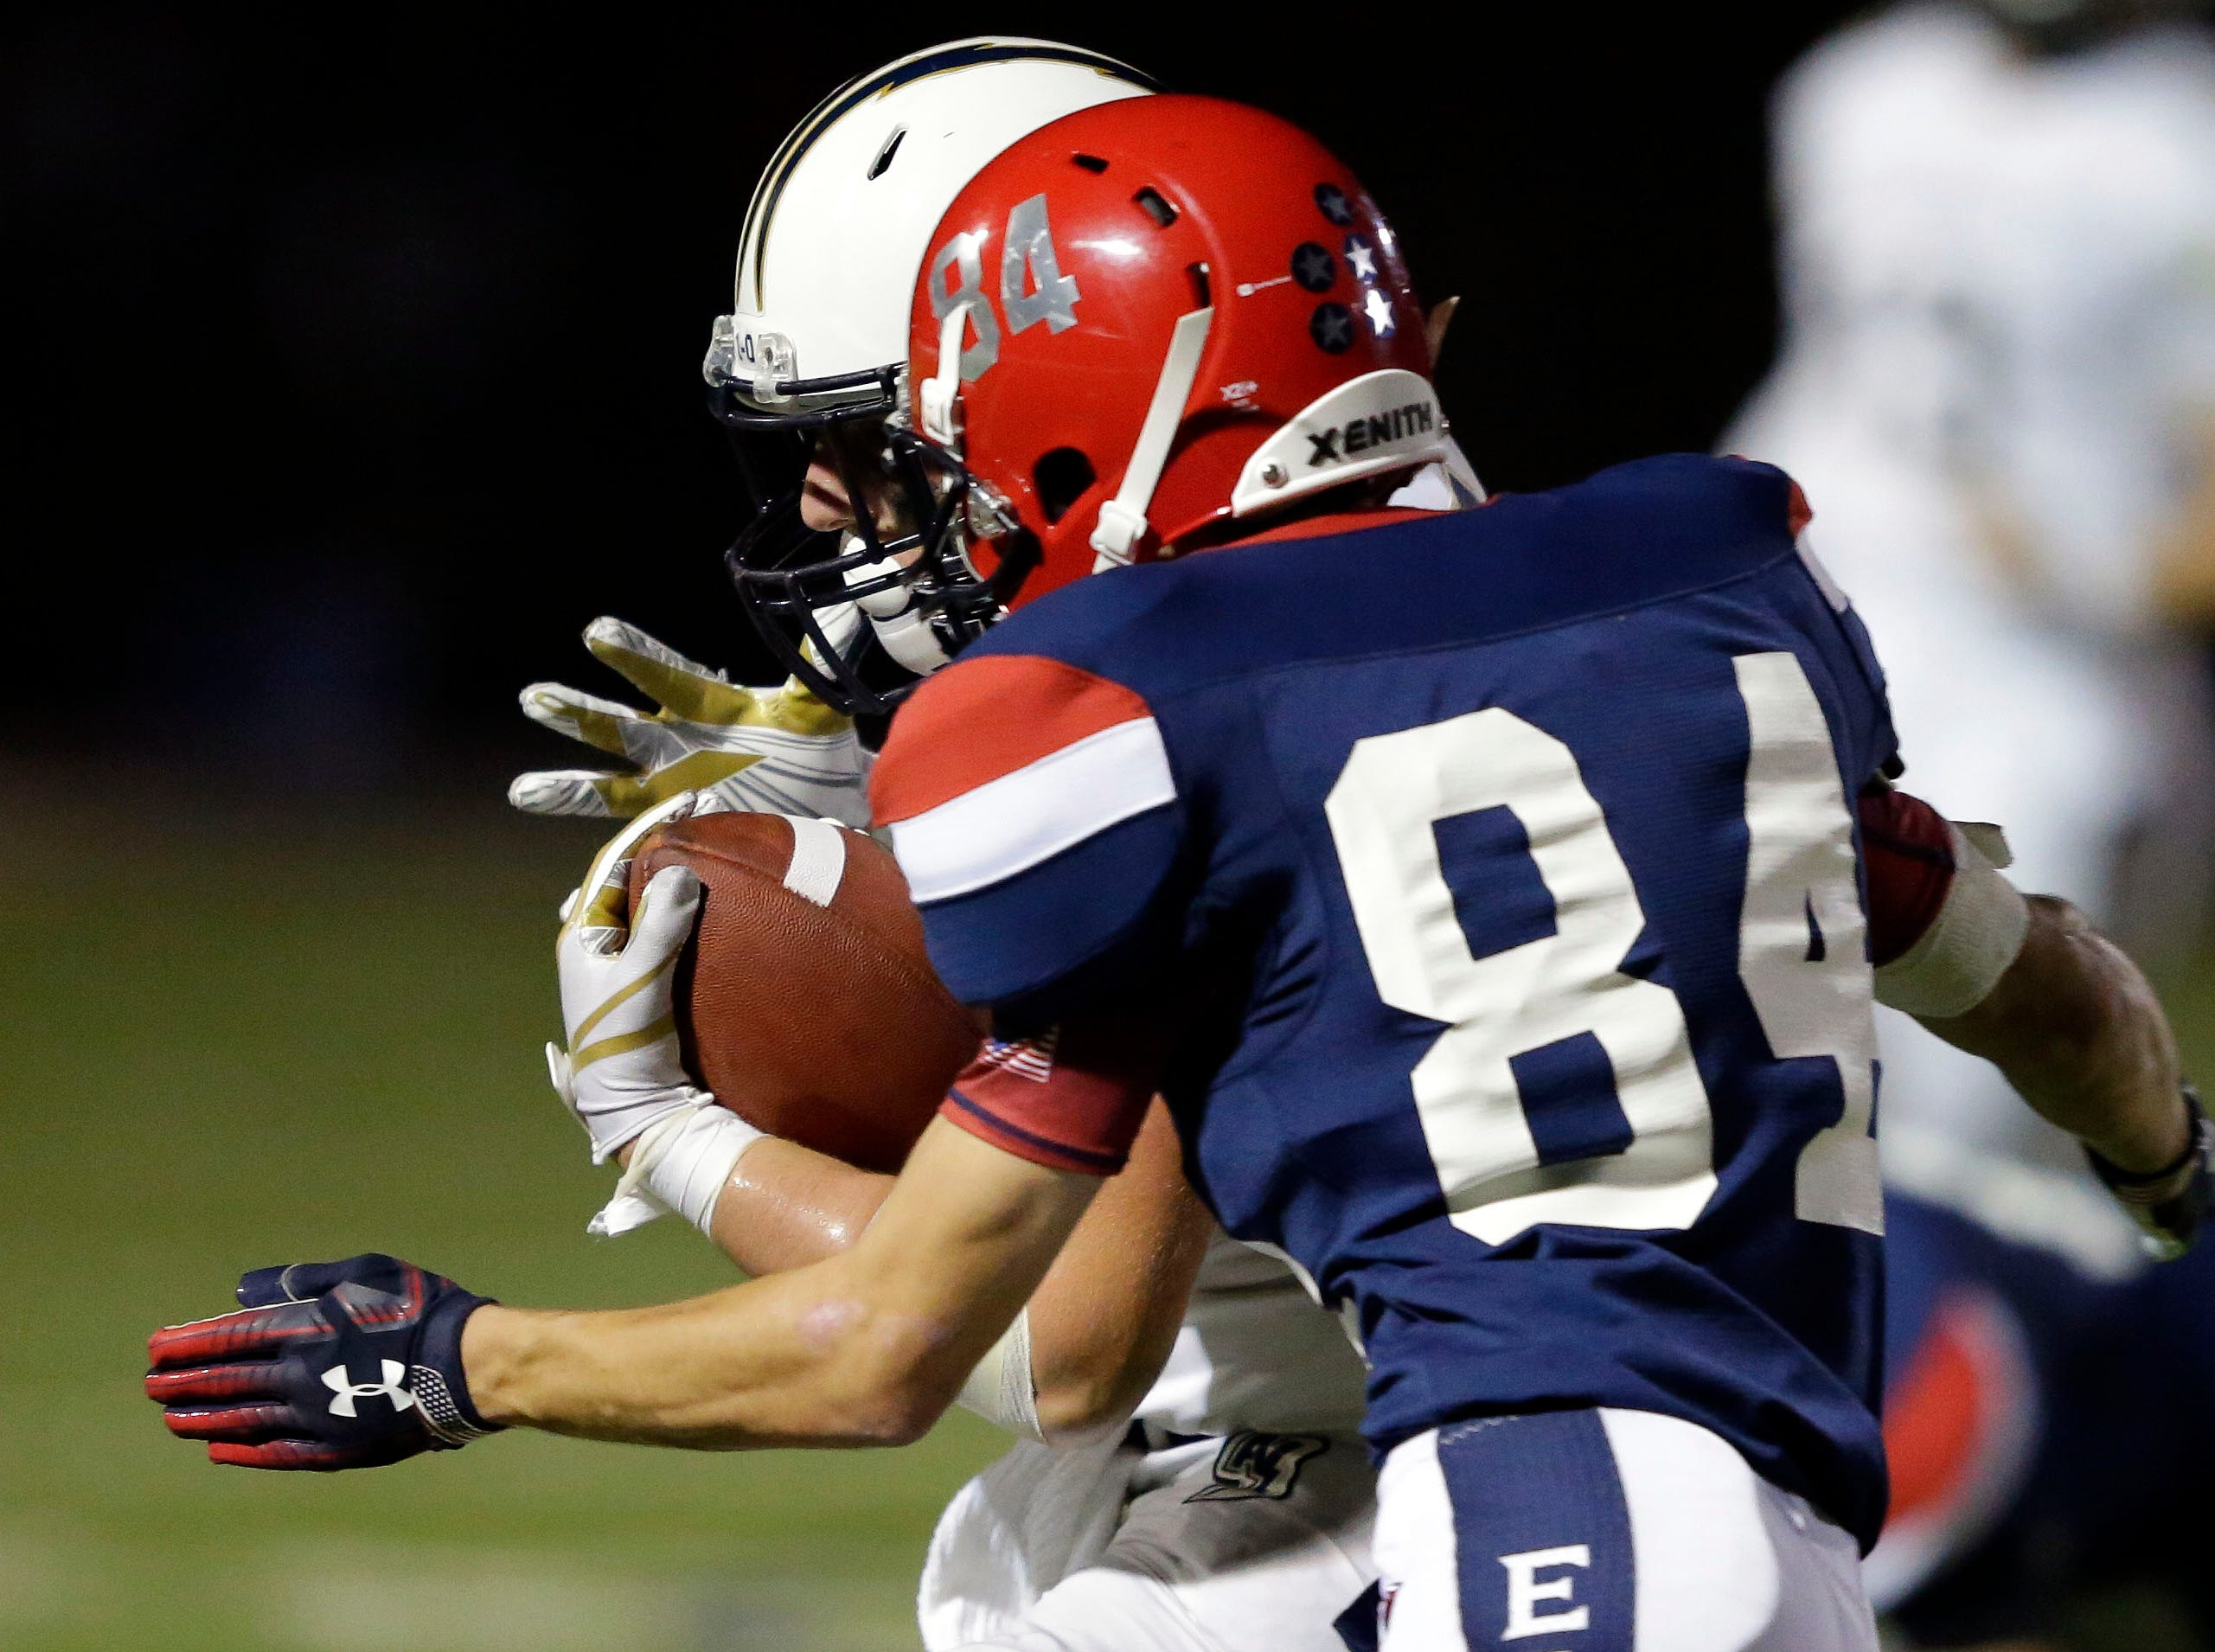 Ryan Balck of Appleton North carries the ball against Alex Weyenberg of Appleton East in a Valley Football Association game Friday, September 14, 2018, at Appleton East High School in Appleton, Wis.Ron Page/USA TODAY NETWORK-Wisconsin